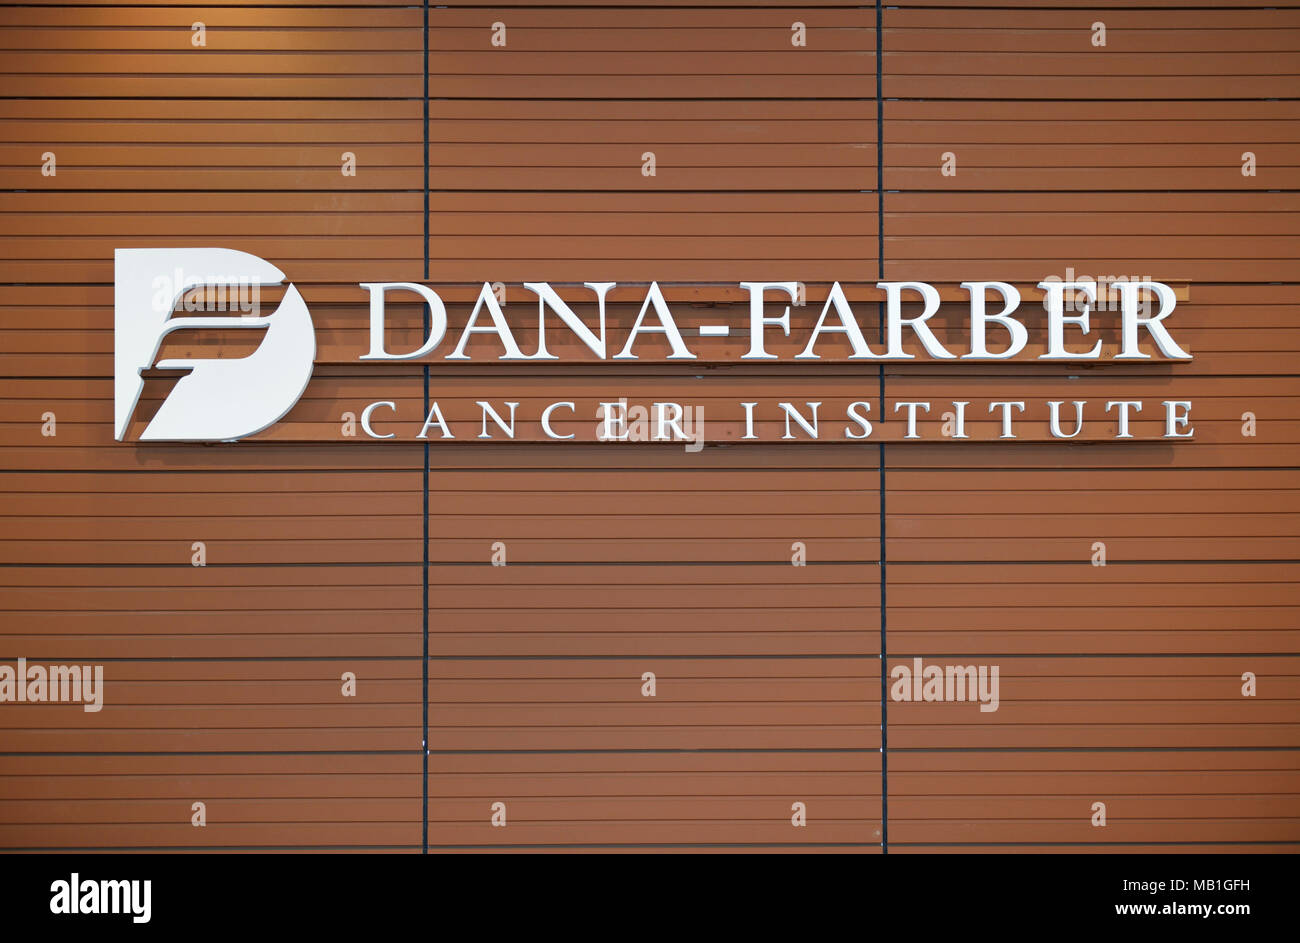 Dana-Farber Cancer Institute, famous cancer research hospital, Boston, MA - Stock Image